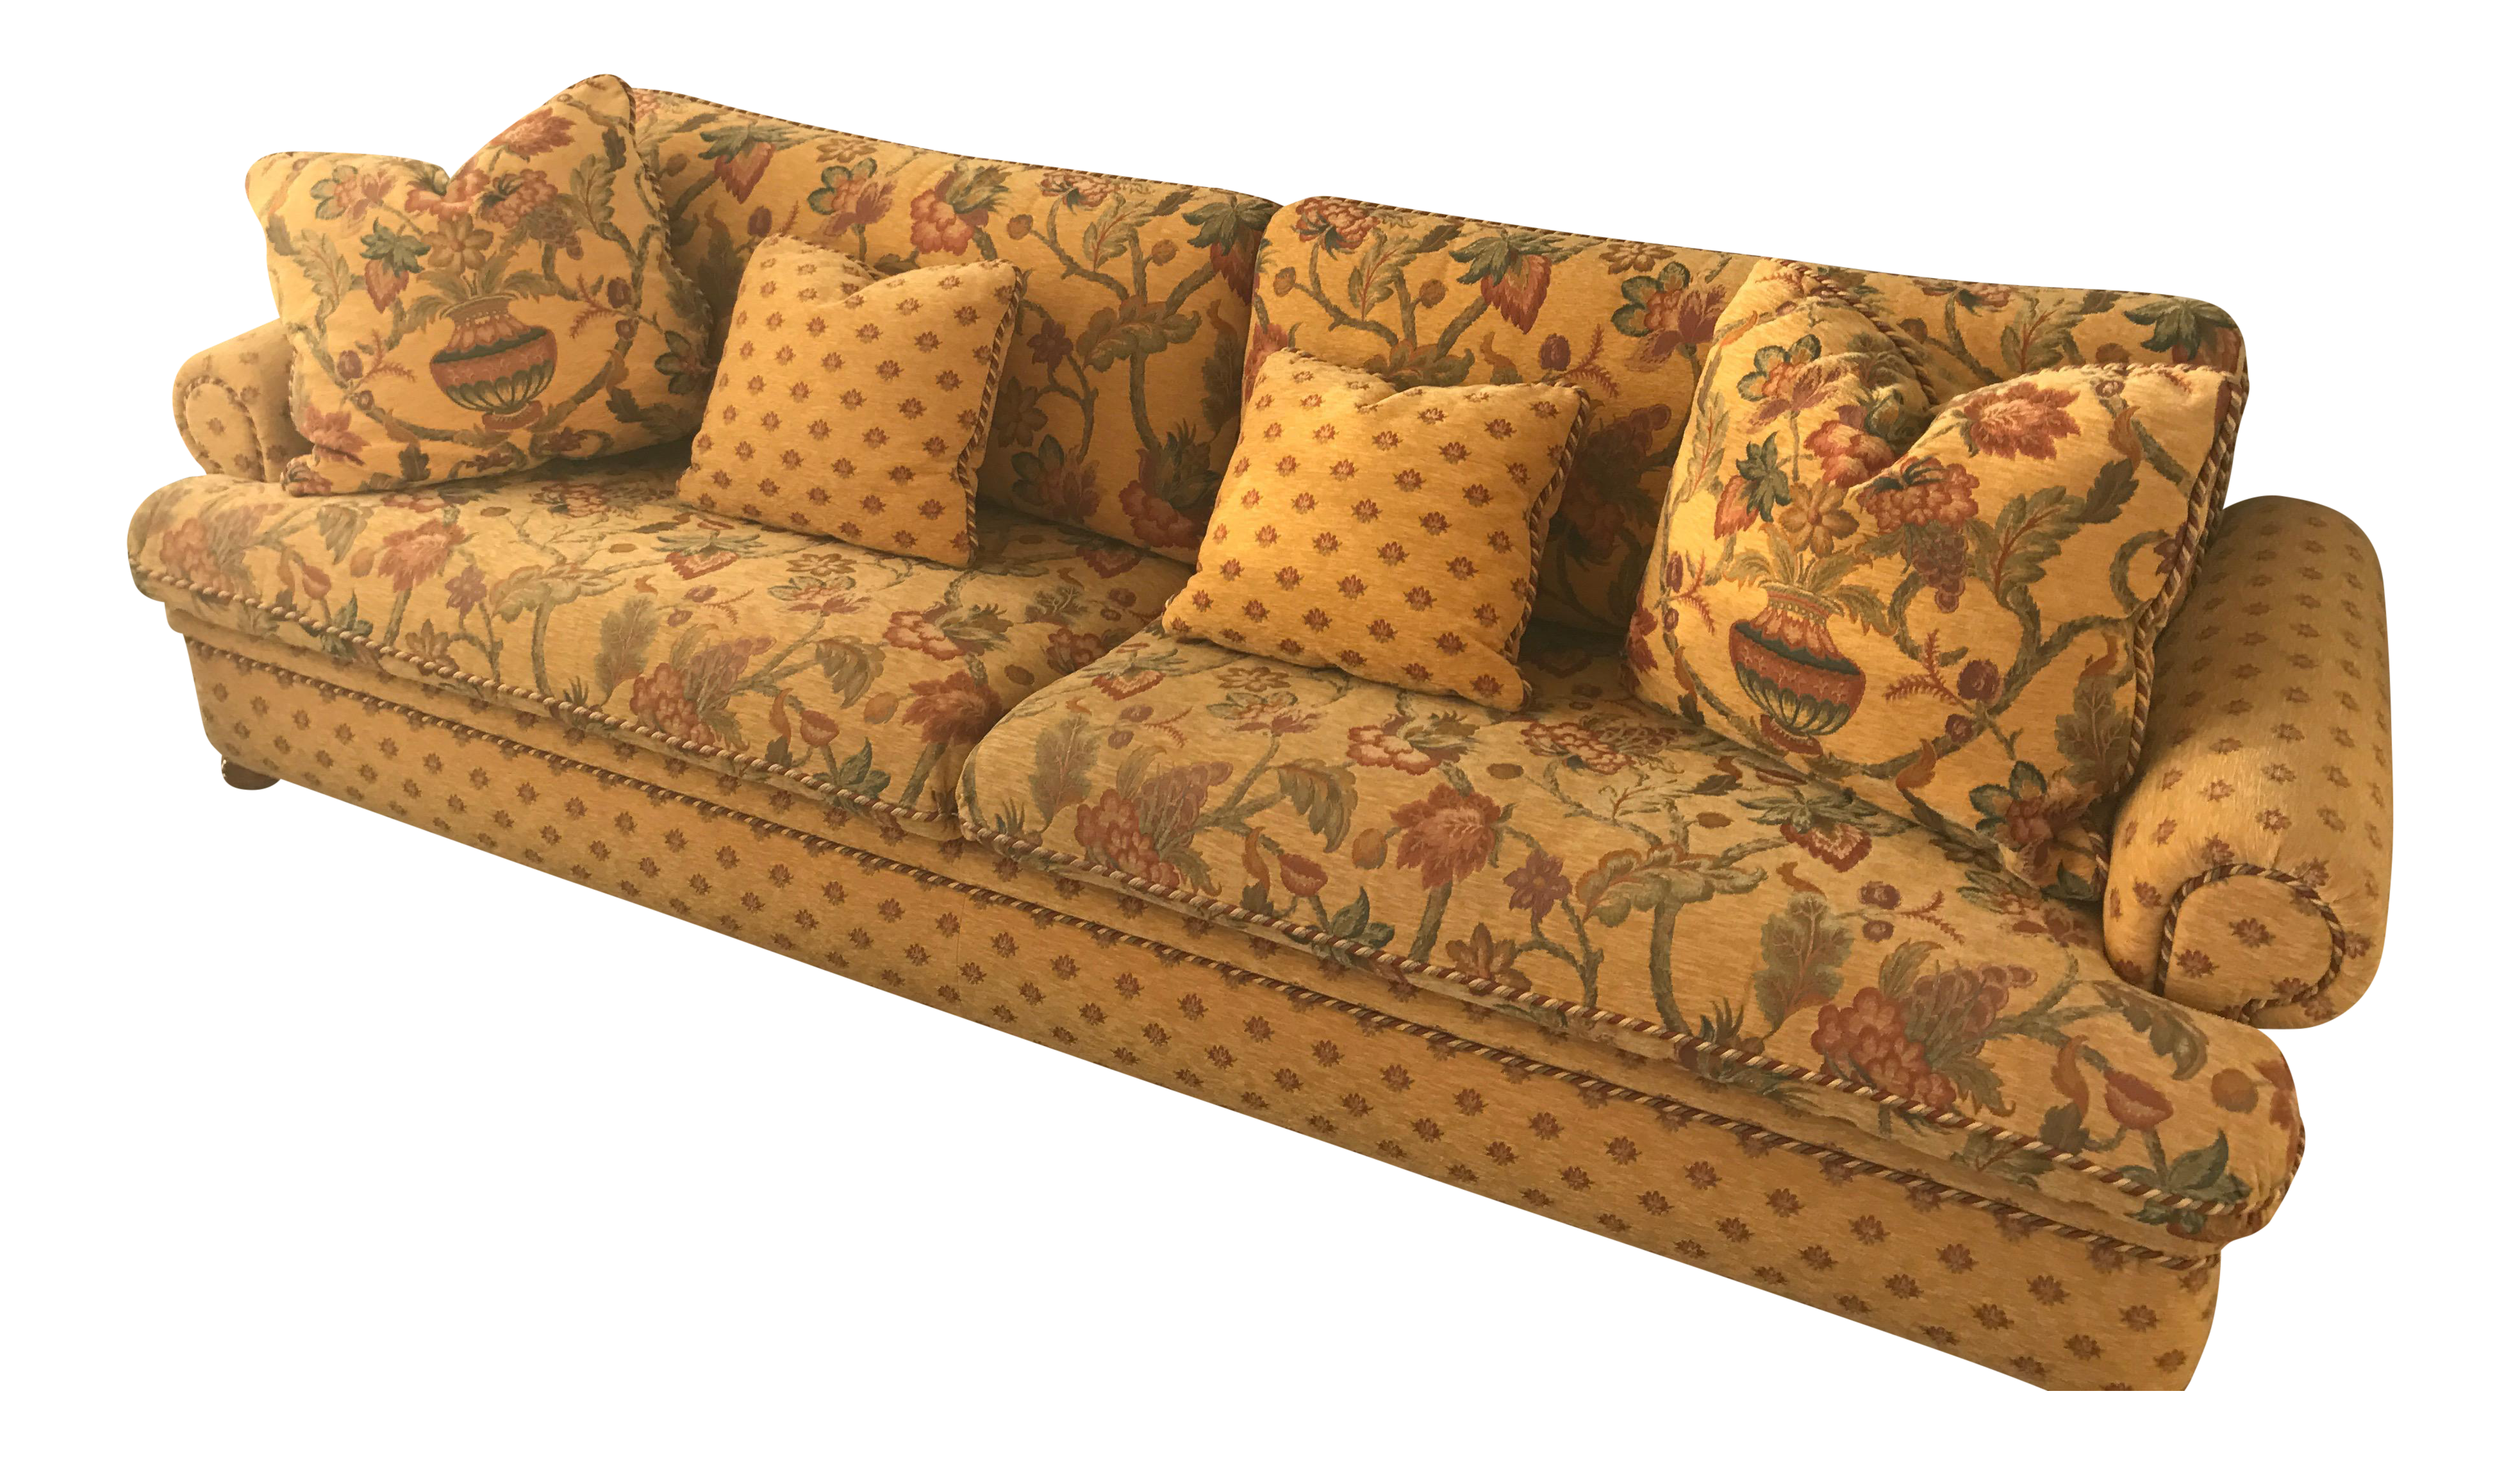 Roche bobois floral sofa chairish for 80s floral couch